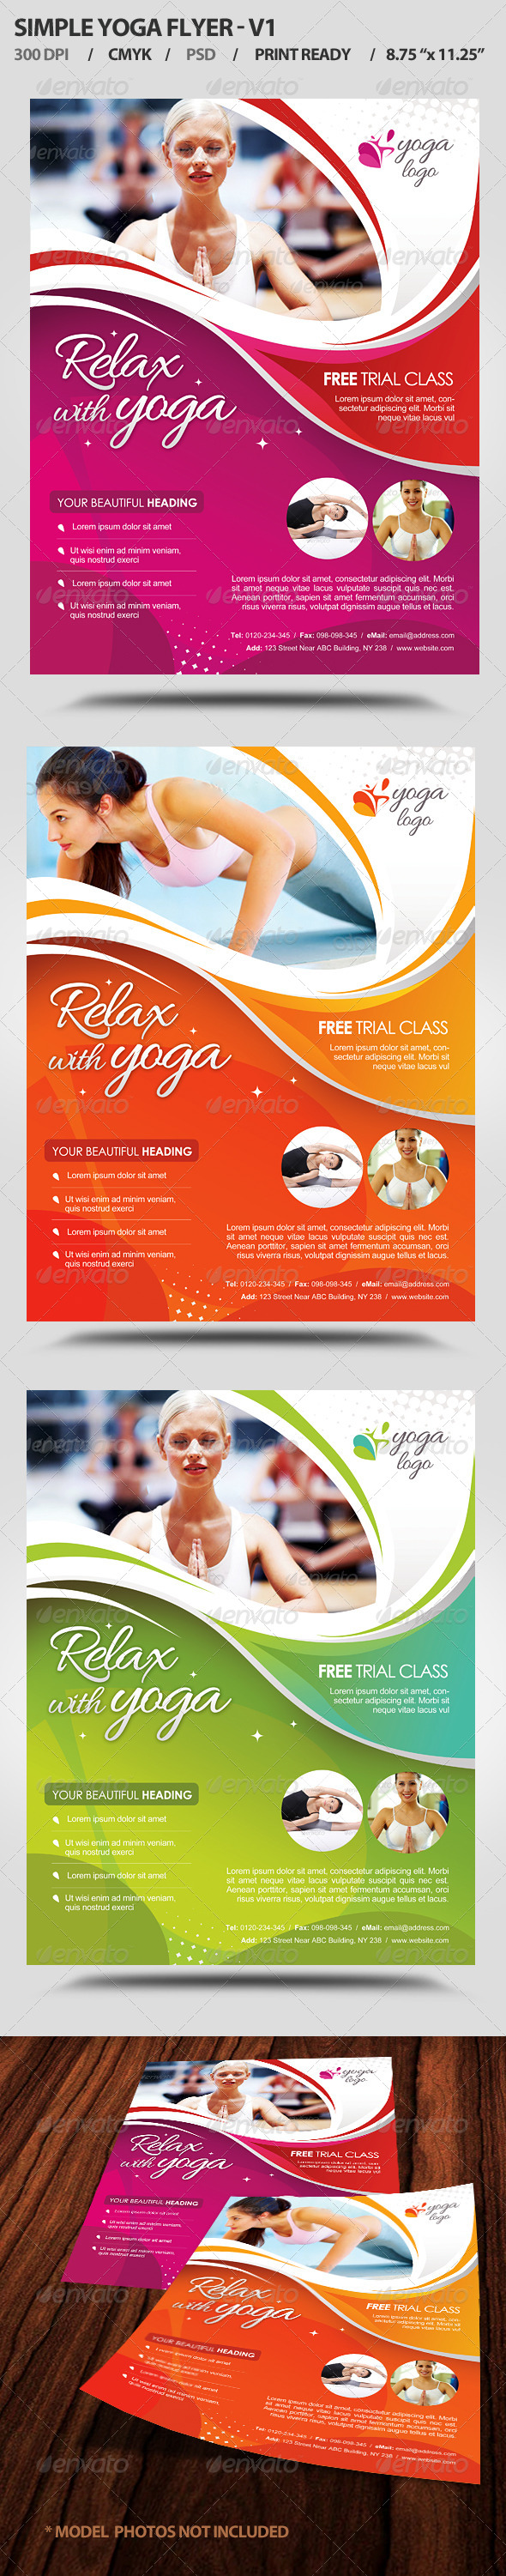 Simple Yoga Flyer V1  - Flyers Print Templates